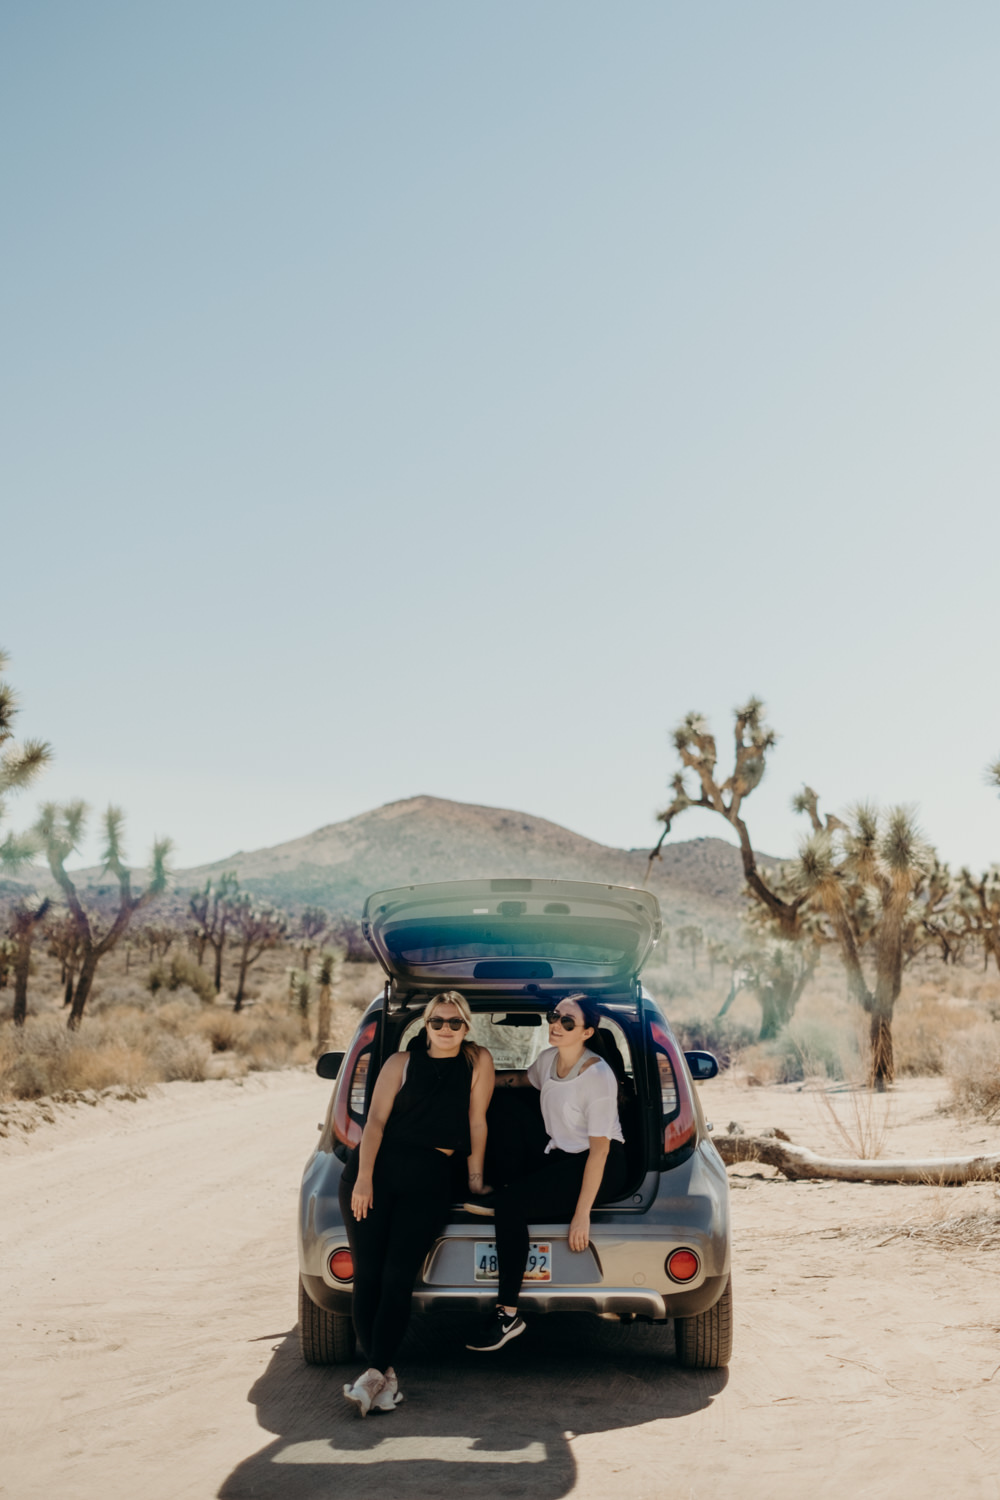 20180915_Joshua Tree - Stay & Hike_37.jpg